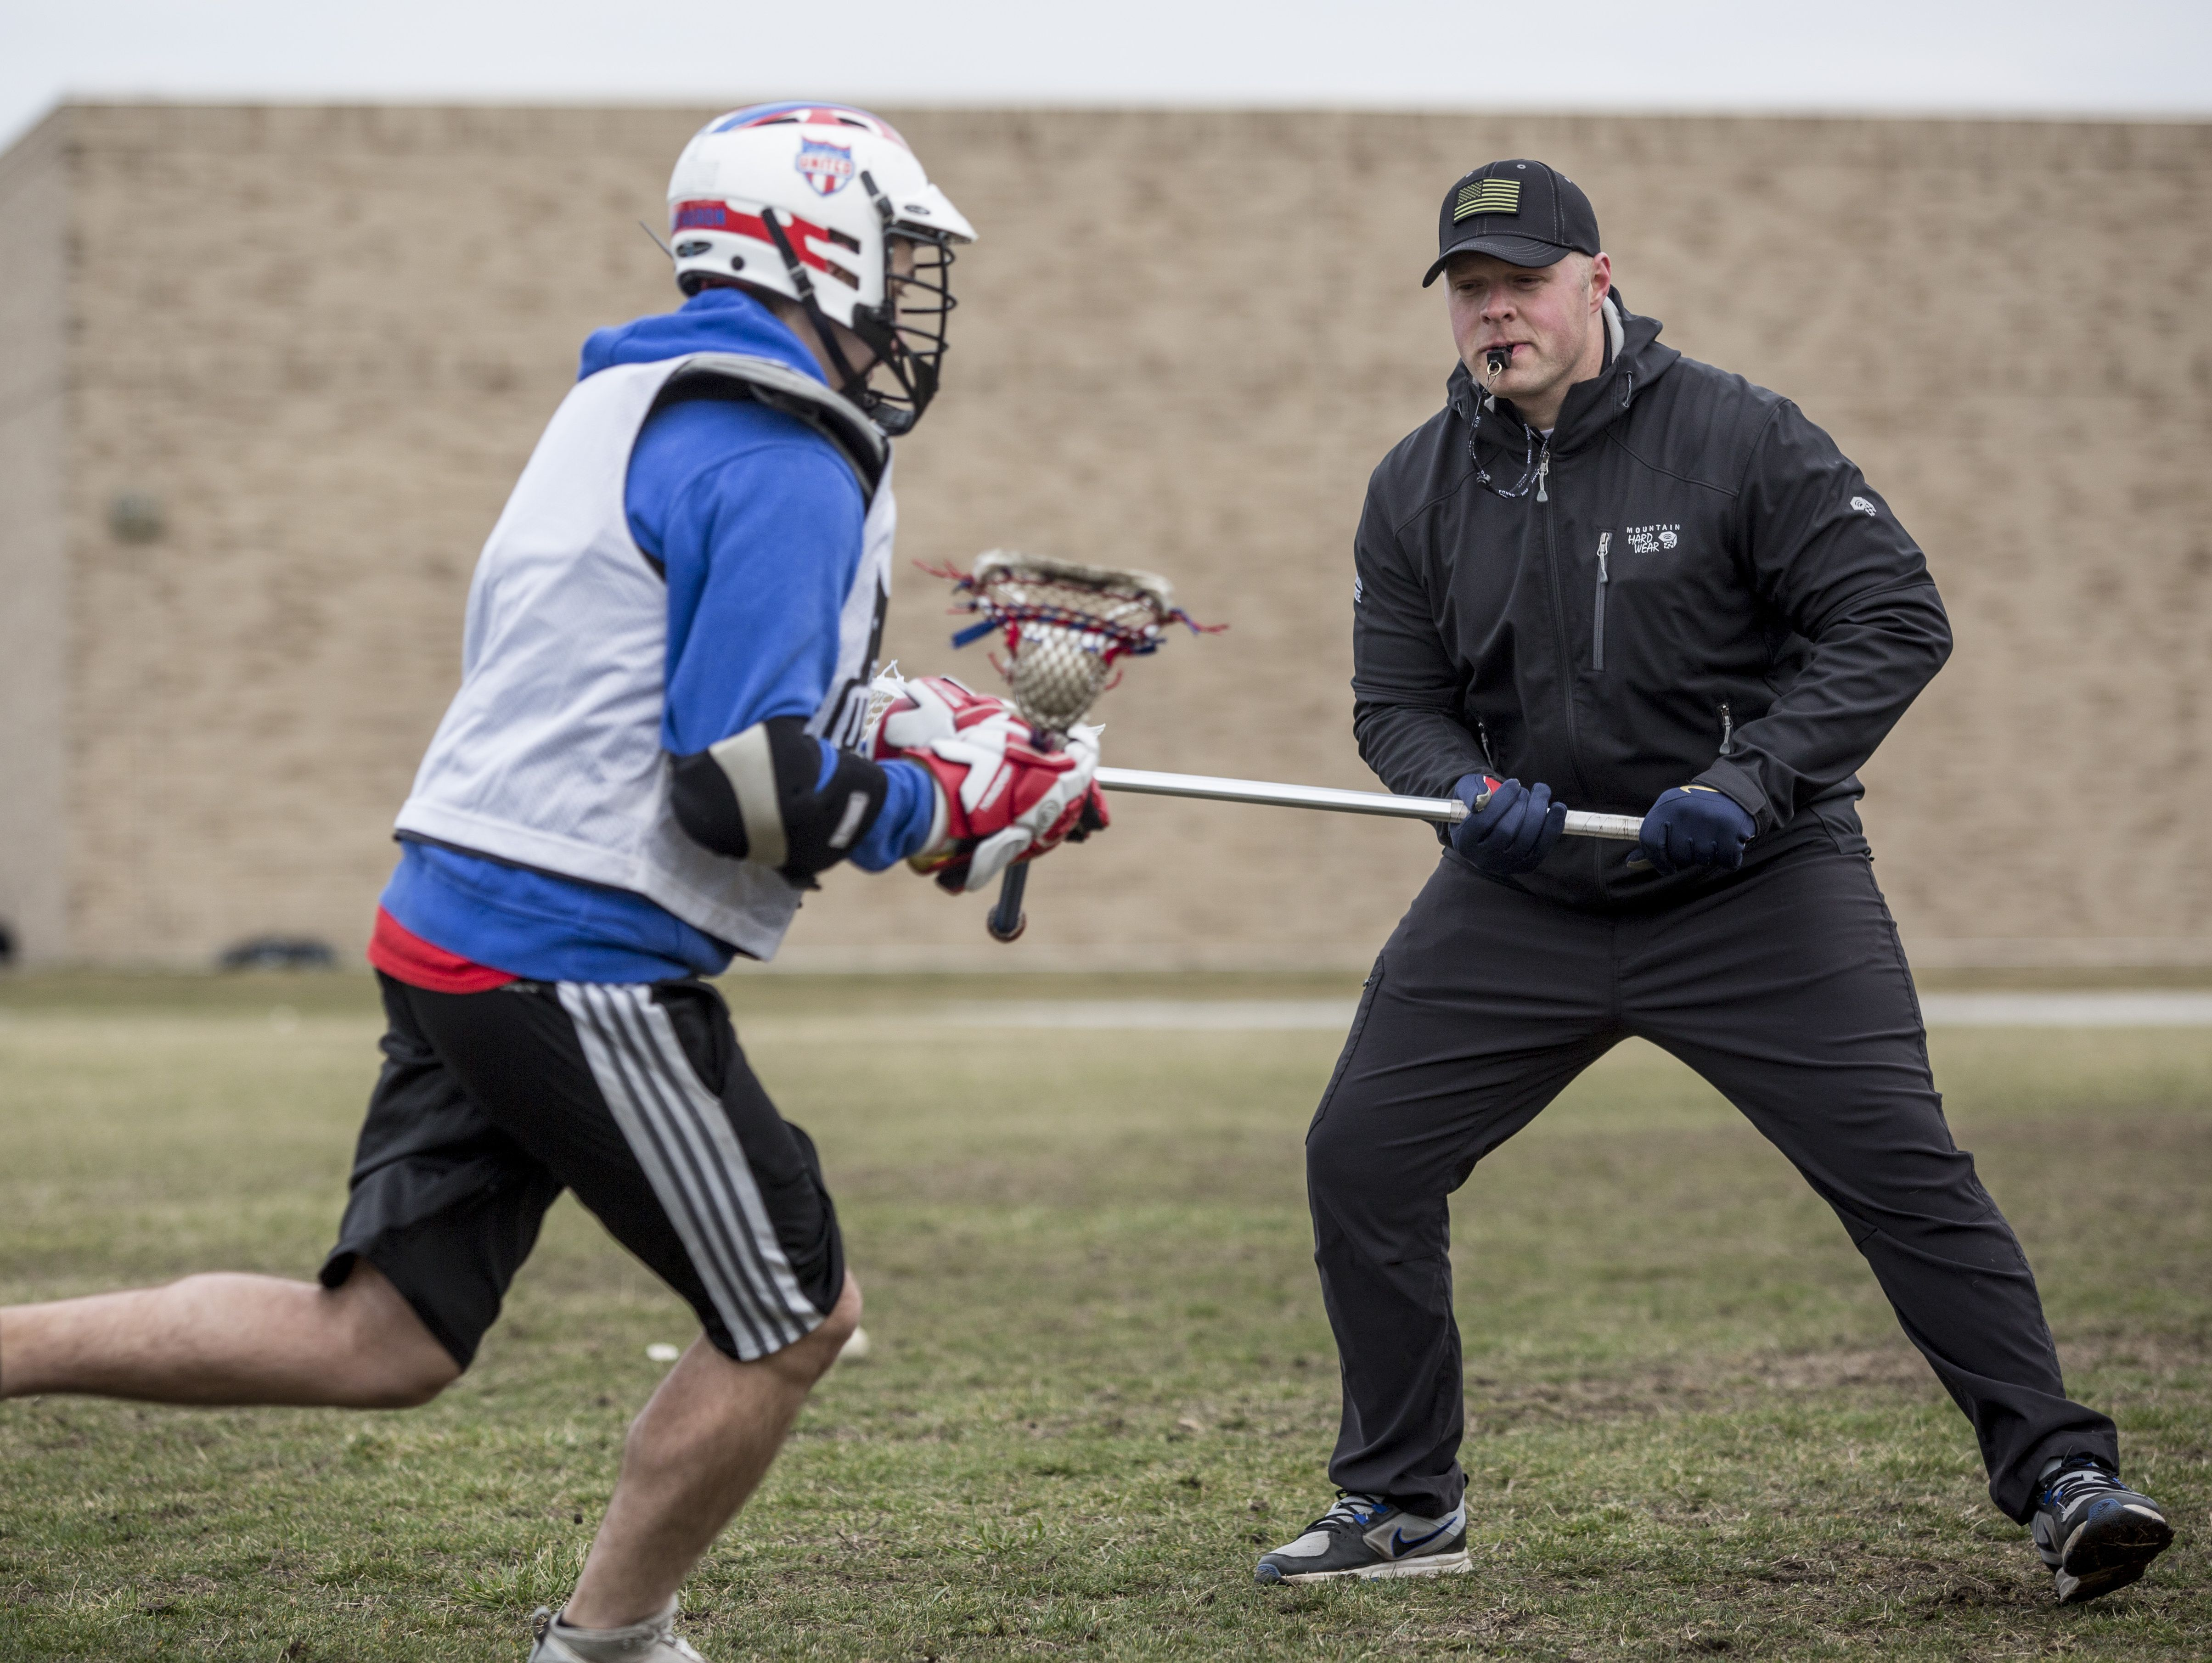 Port Huron Unified coach Jon Holden runs drills with players during practice Friday, March 18, 2016 at Central Middle School.